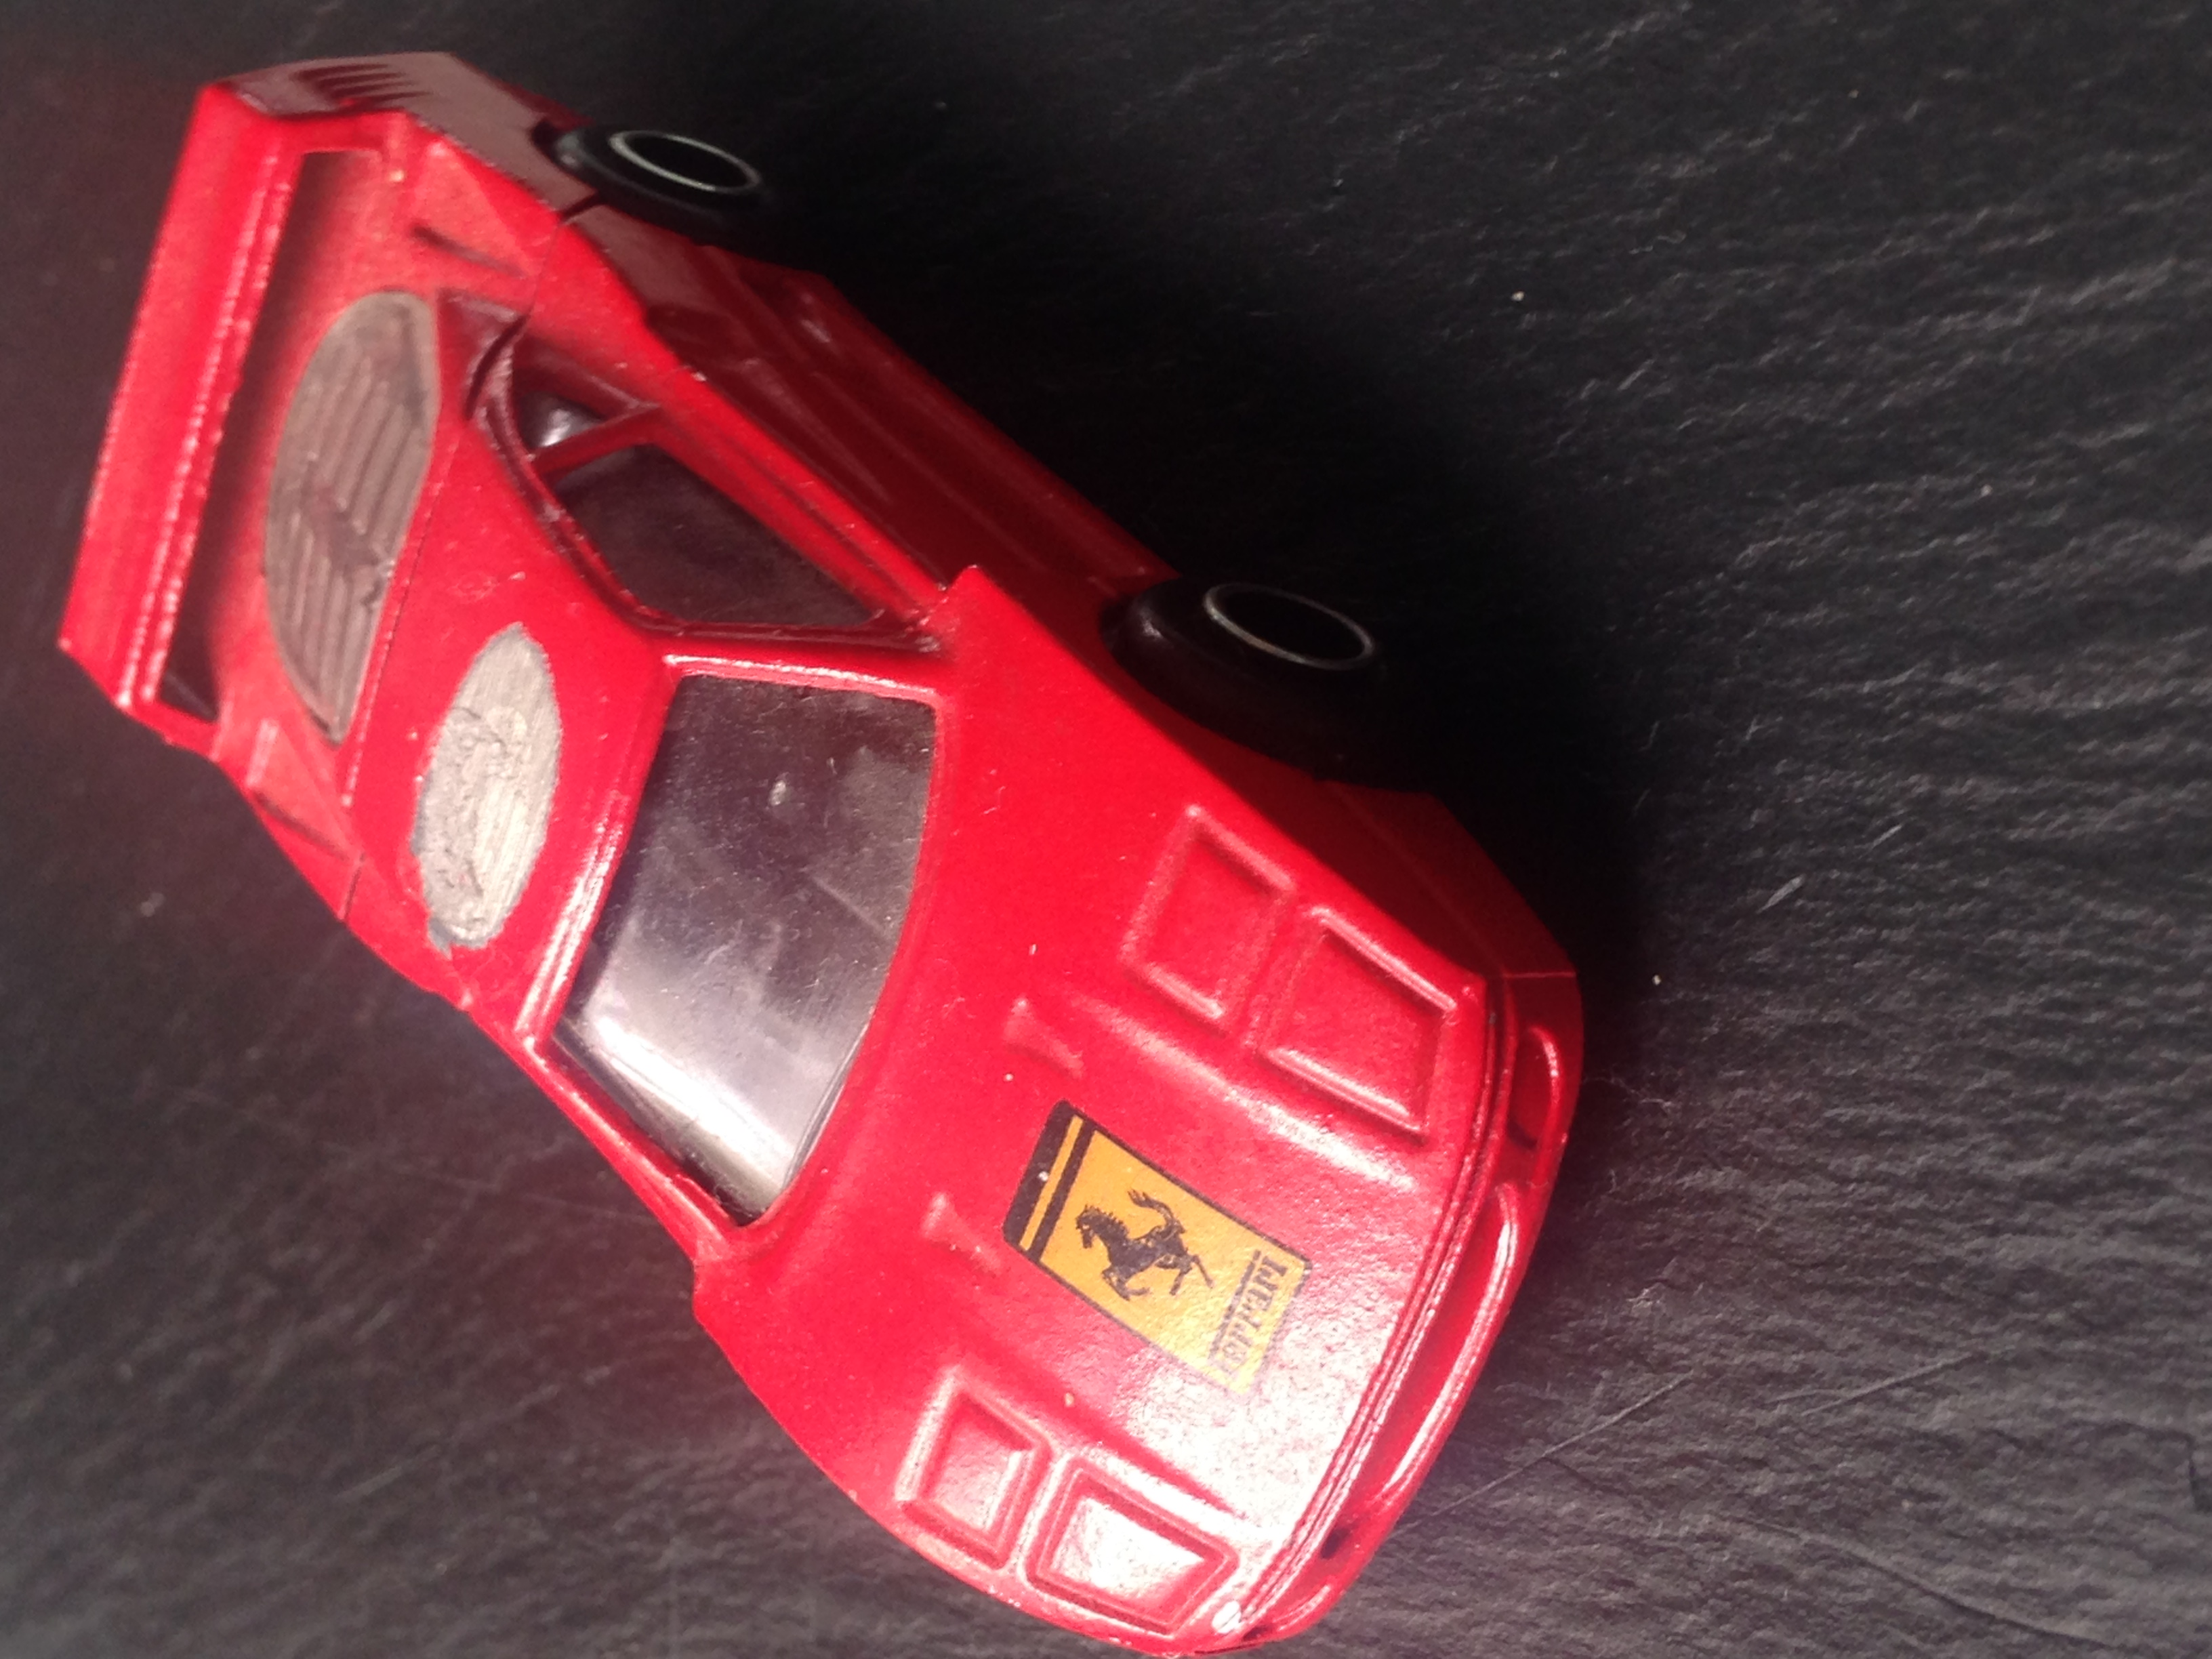 Collection item a red Ferrari toy metal car